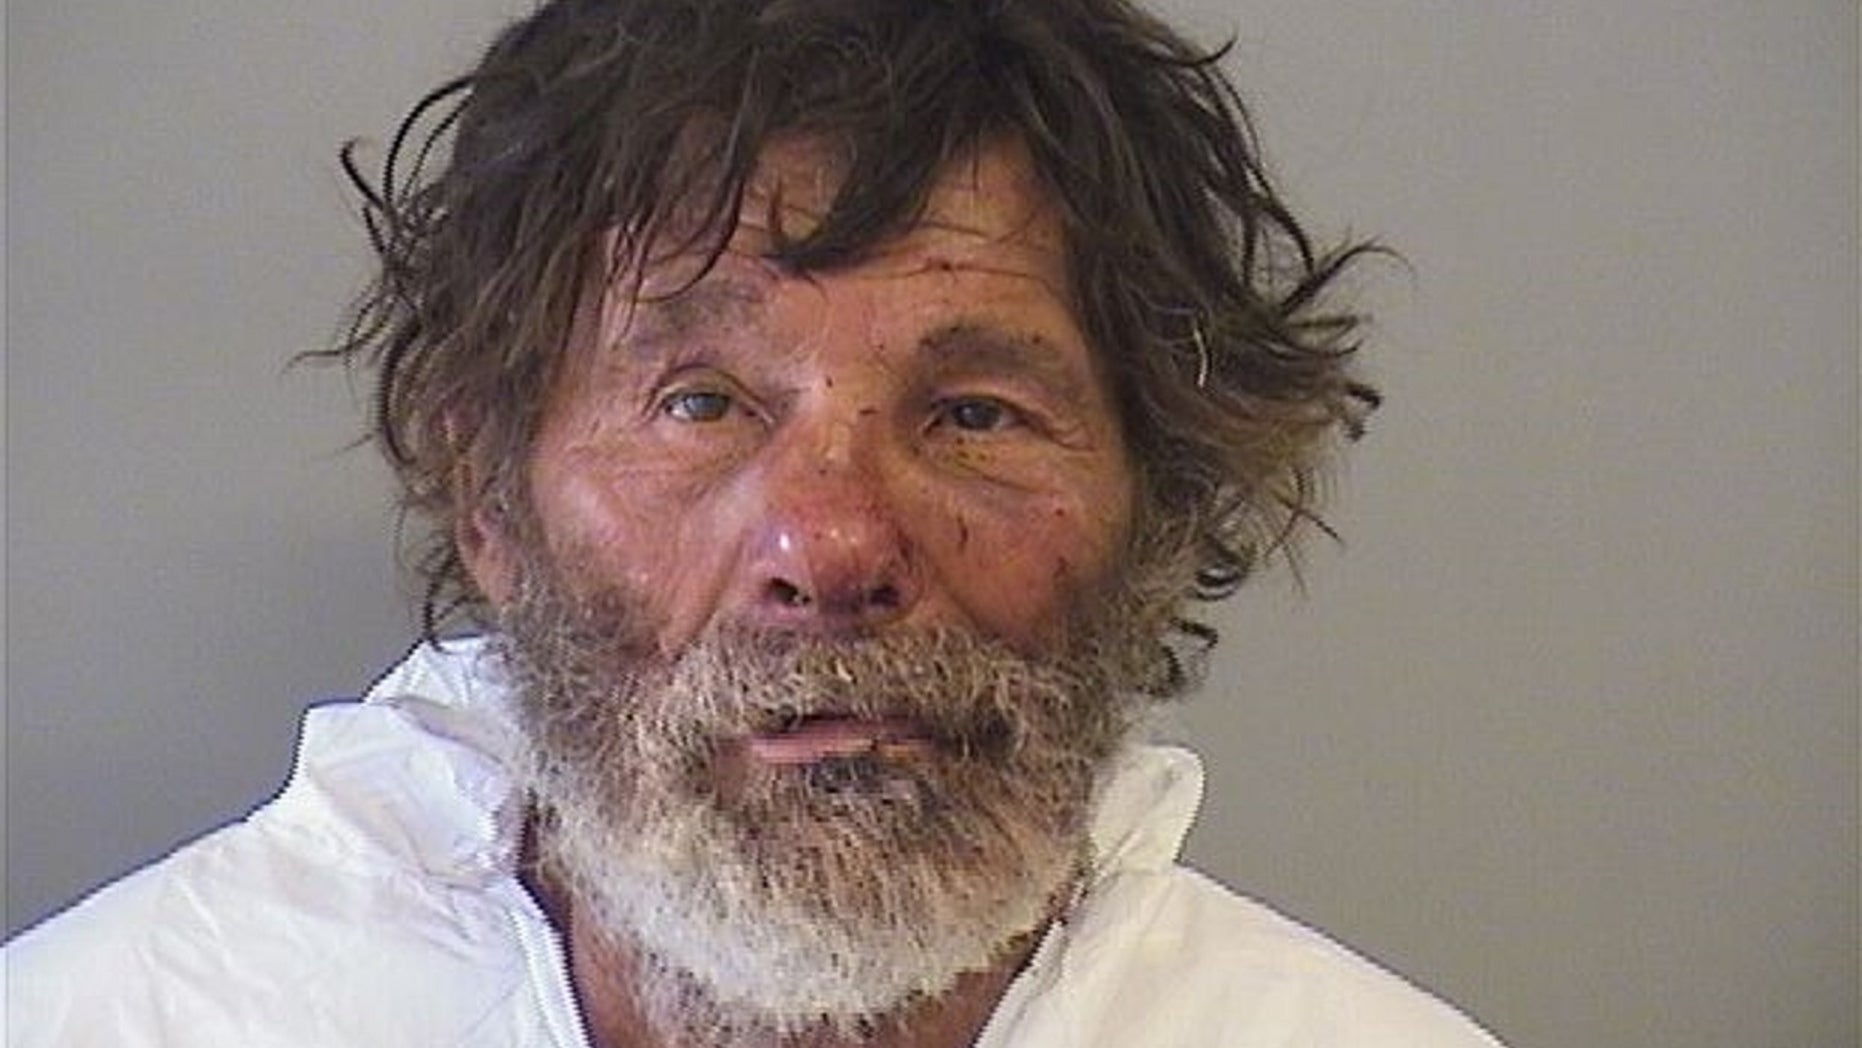 Jim Mickey Drake was arrested in the deadly beating of a 60-year-old man.